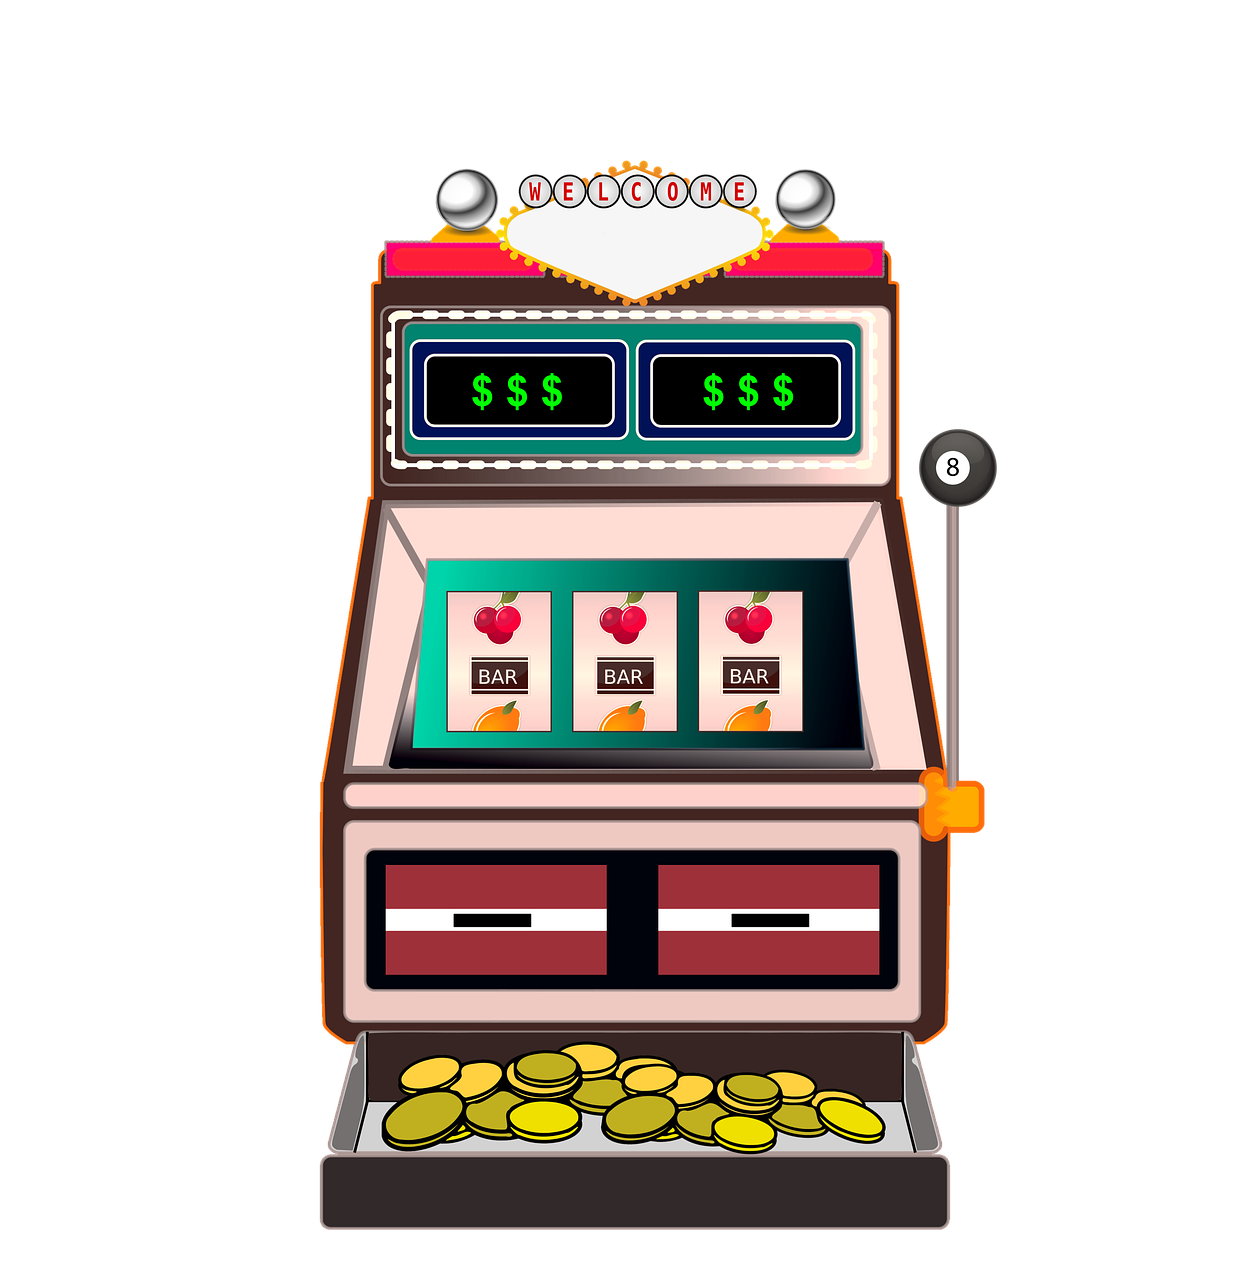 Slot machine drawing